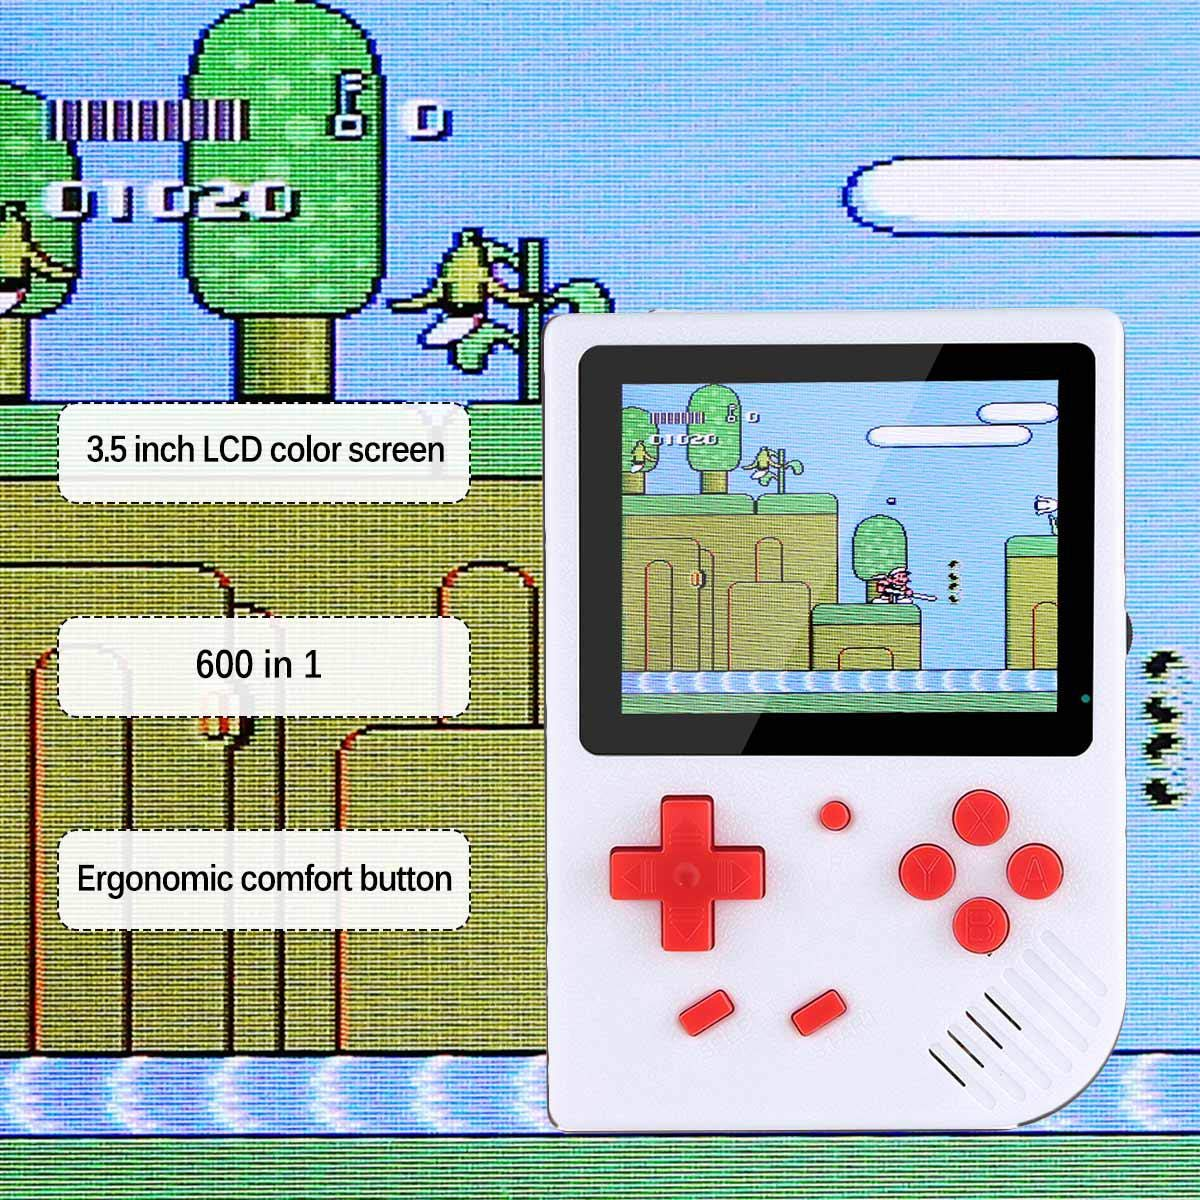 LAYOPO Retro Mini Handheld Video Game Console Gameboy Built-in 600 Classic Games Gift by LAYOPO (Image #2)